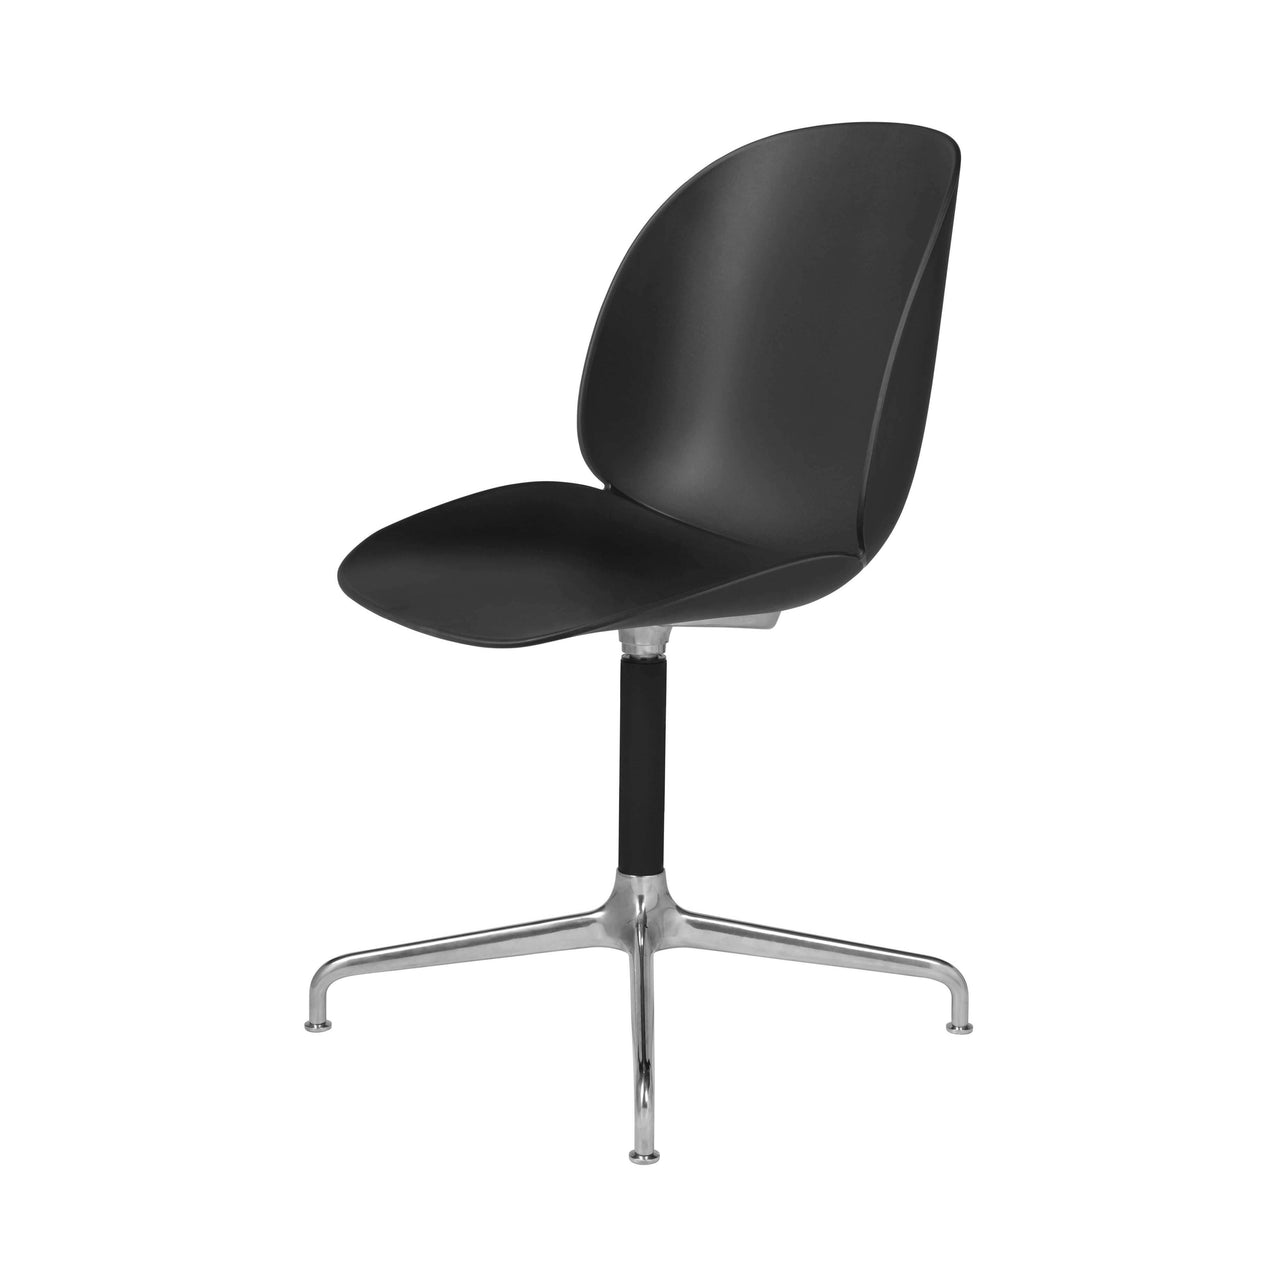 Beetle Meeting Chair: 4-Star Swivel Base: Black + Polished Aluminum + Black Matte Base + Plastic Glides